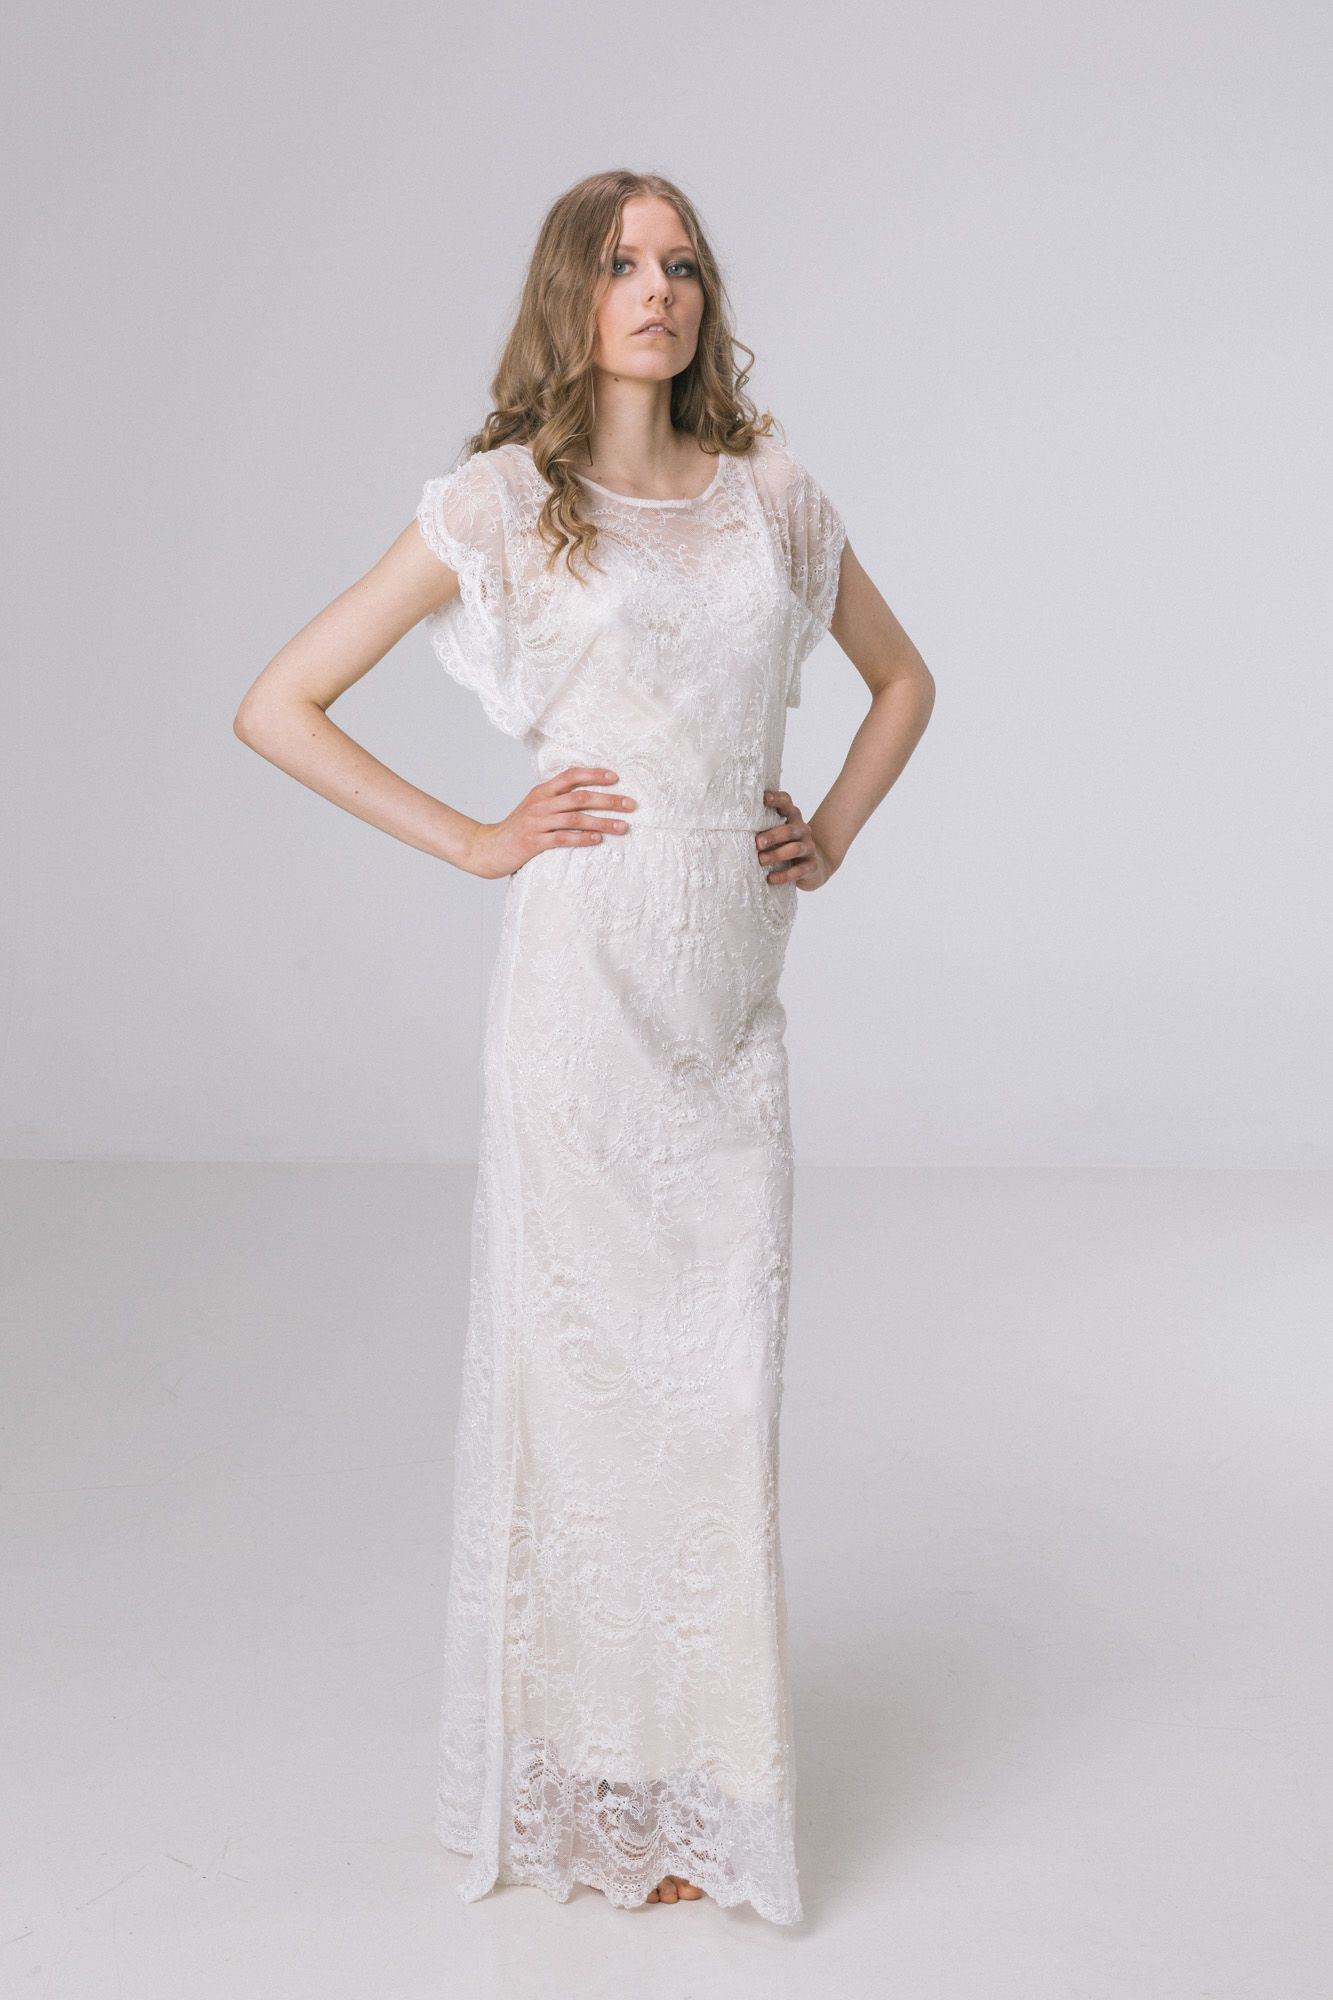 Ethical Wedding Dress Sample Sale With Indiebride London 14th September 2019 Wedding Dress Sample Sale Ethical Wedding Dress Wedding Dresses,Dress For A Formal Wedding